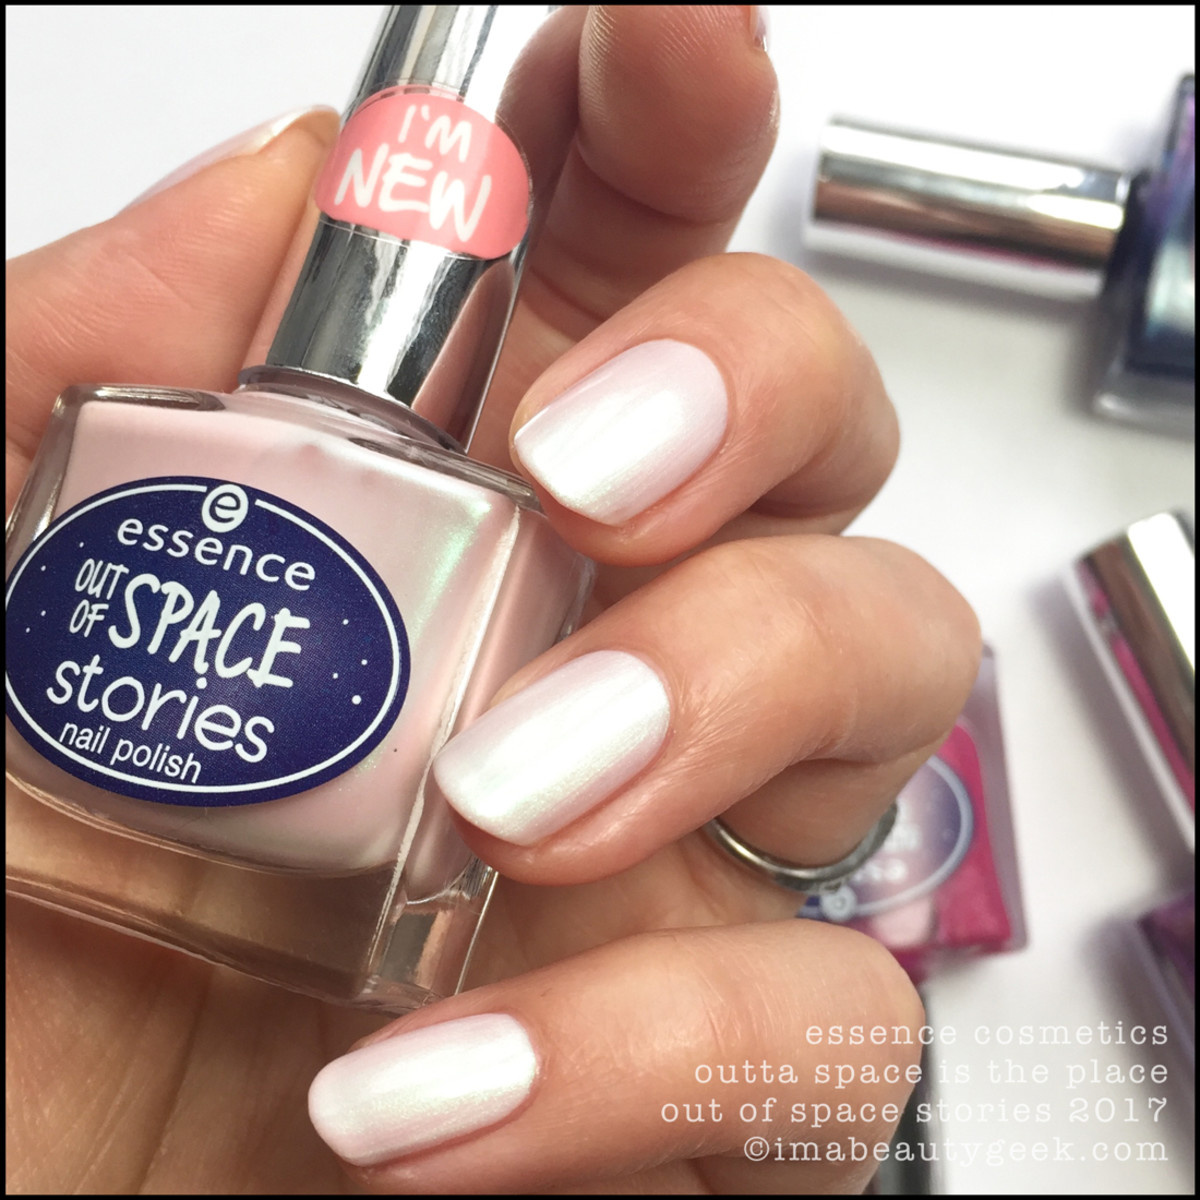 Essence Outta Space Is The Place Nail Swatches